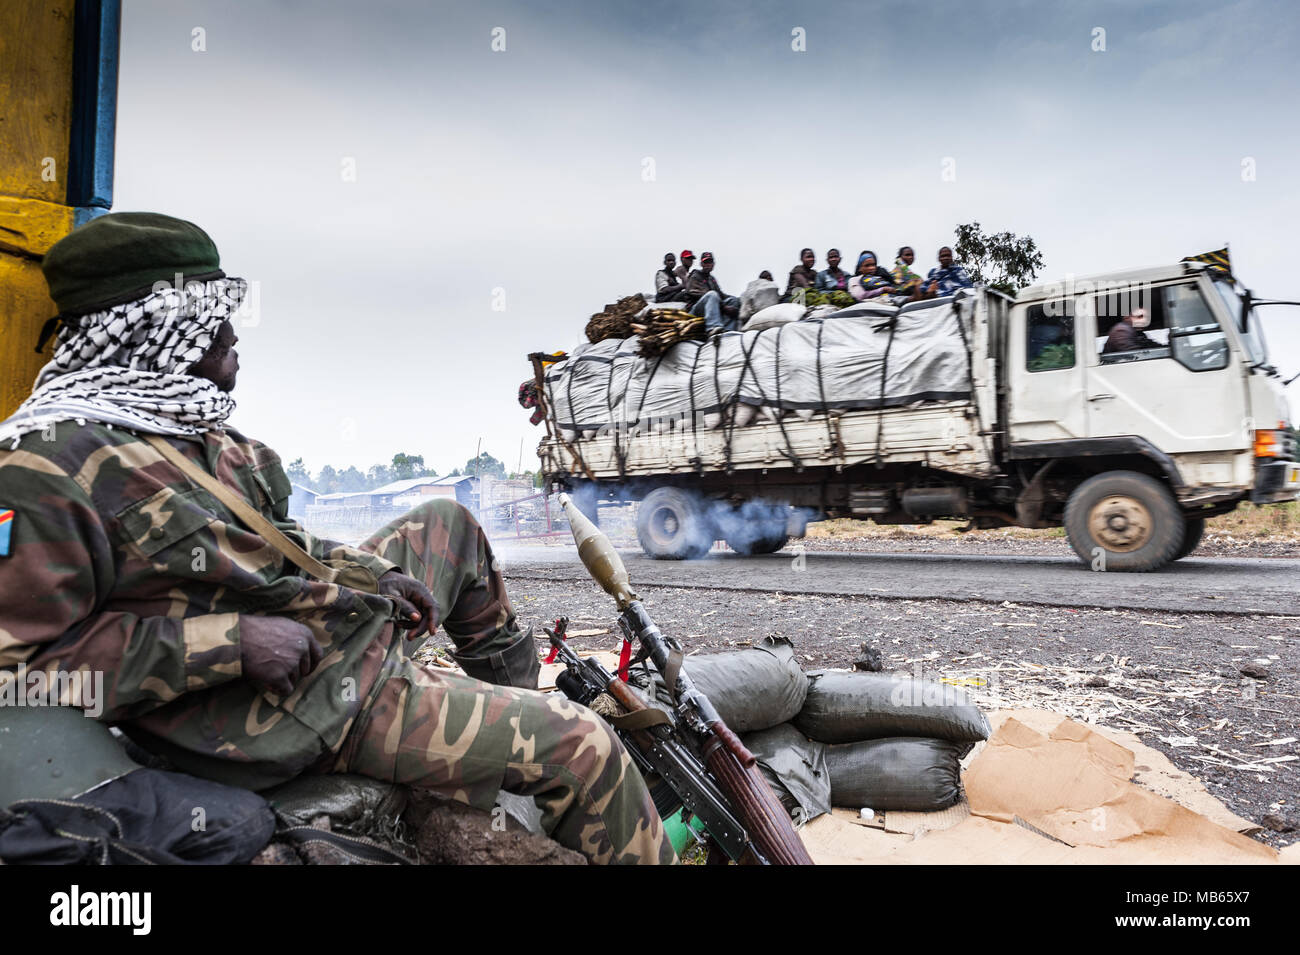 An FARDC soldier at a checkpoint near Goma, eastern Democratic Republic of Congo - Stock Image